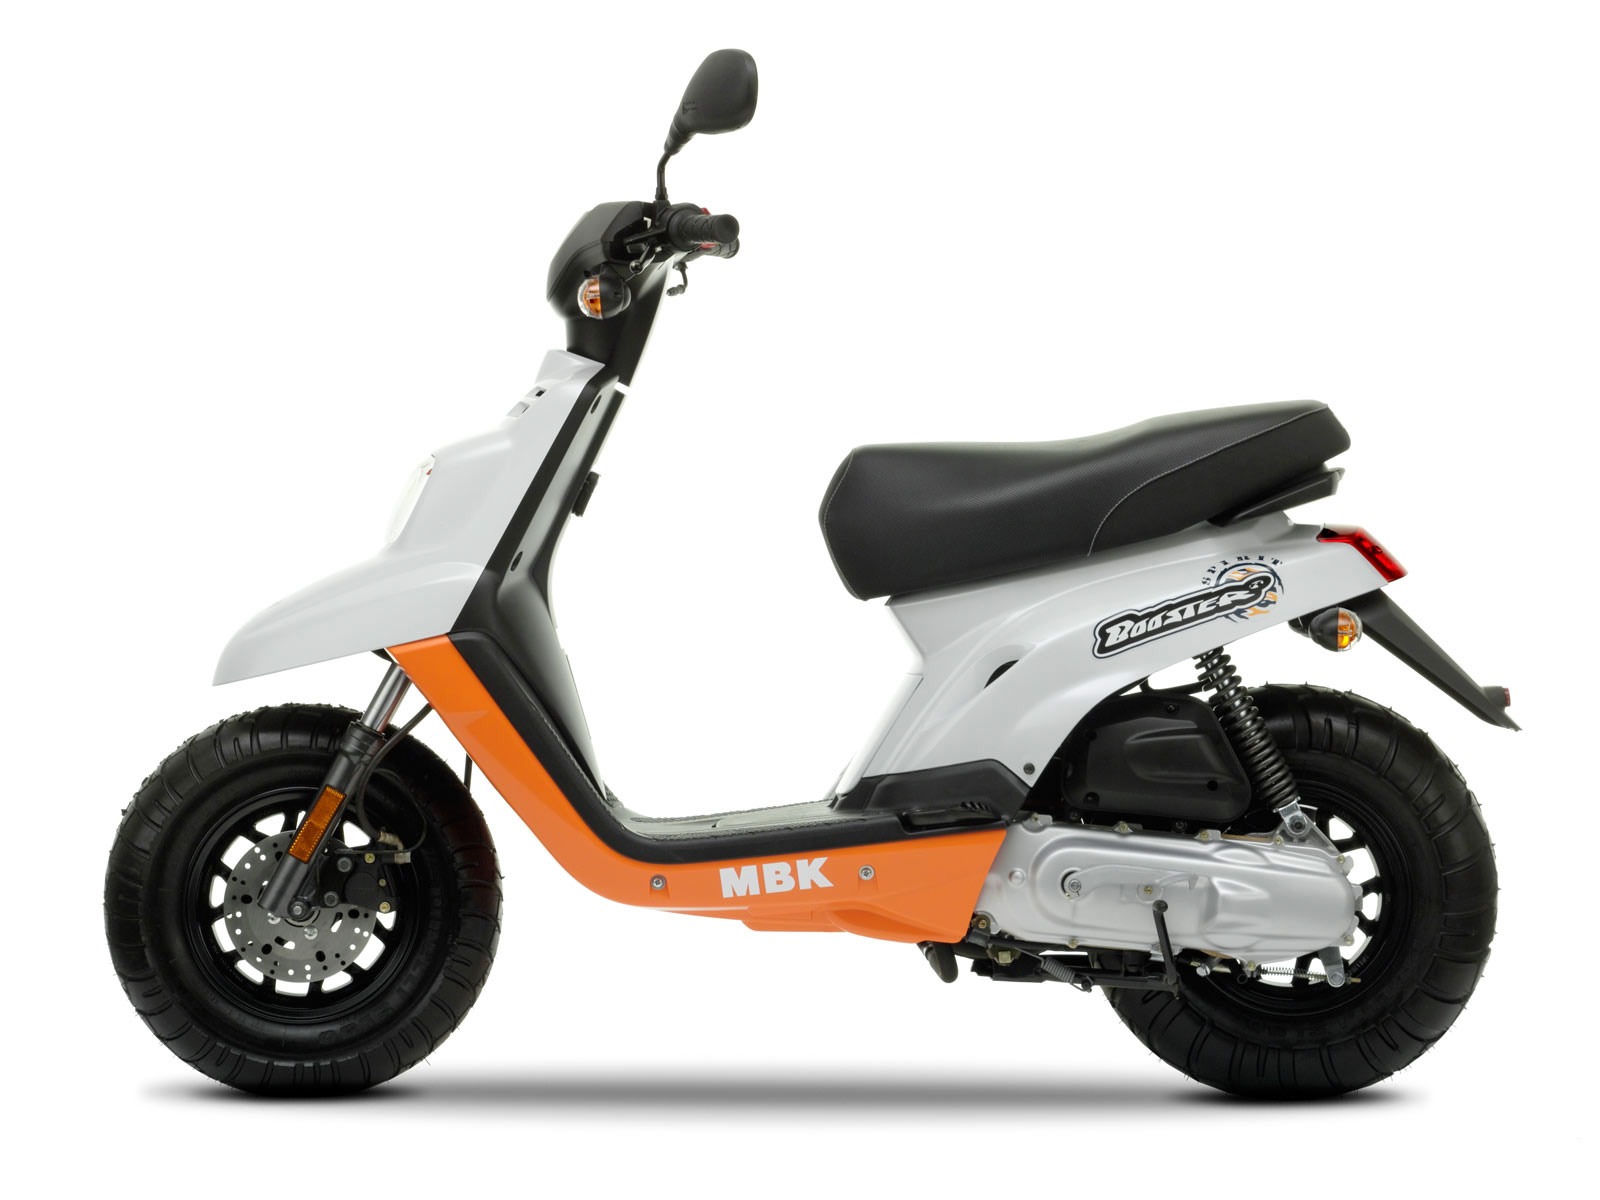 mbk booster scooter pictures specifications